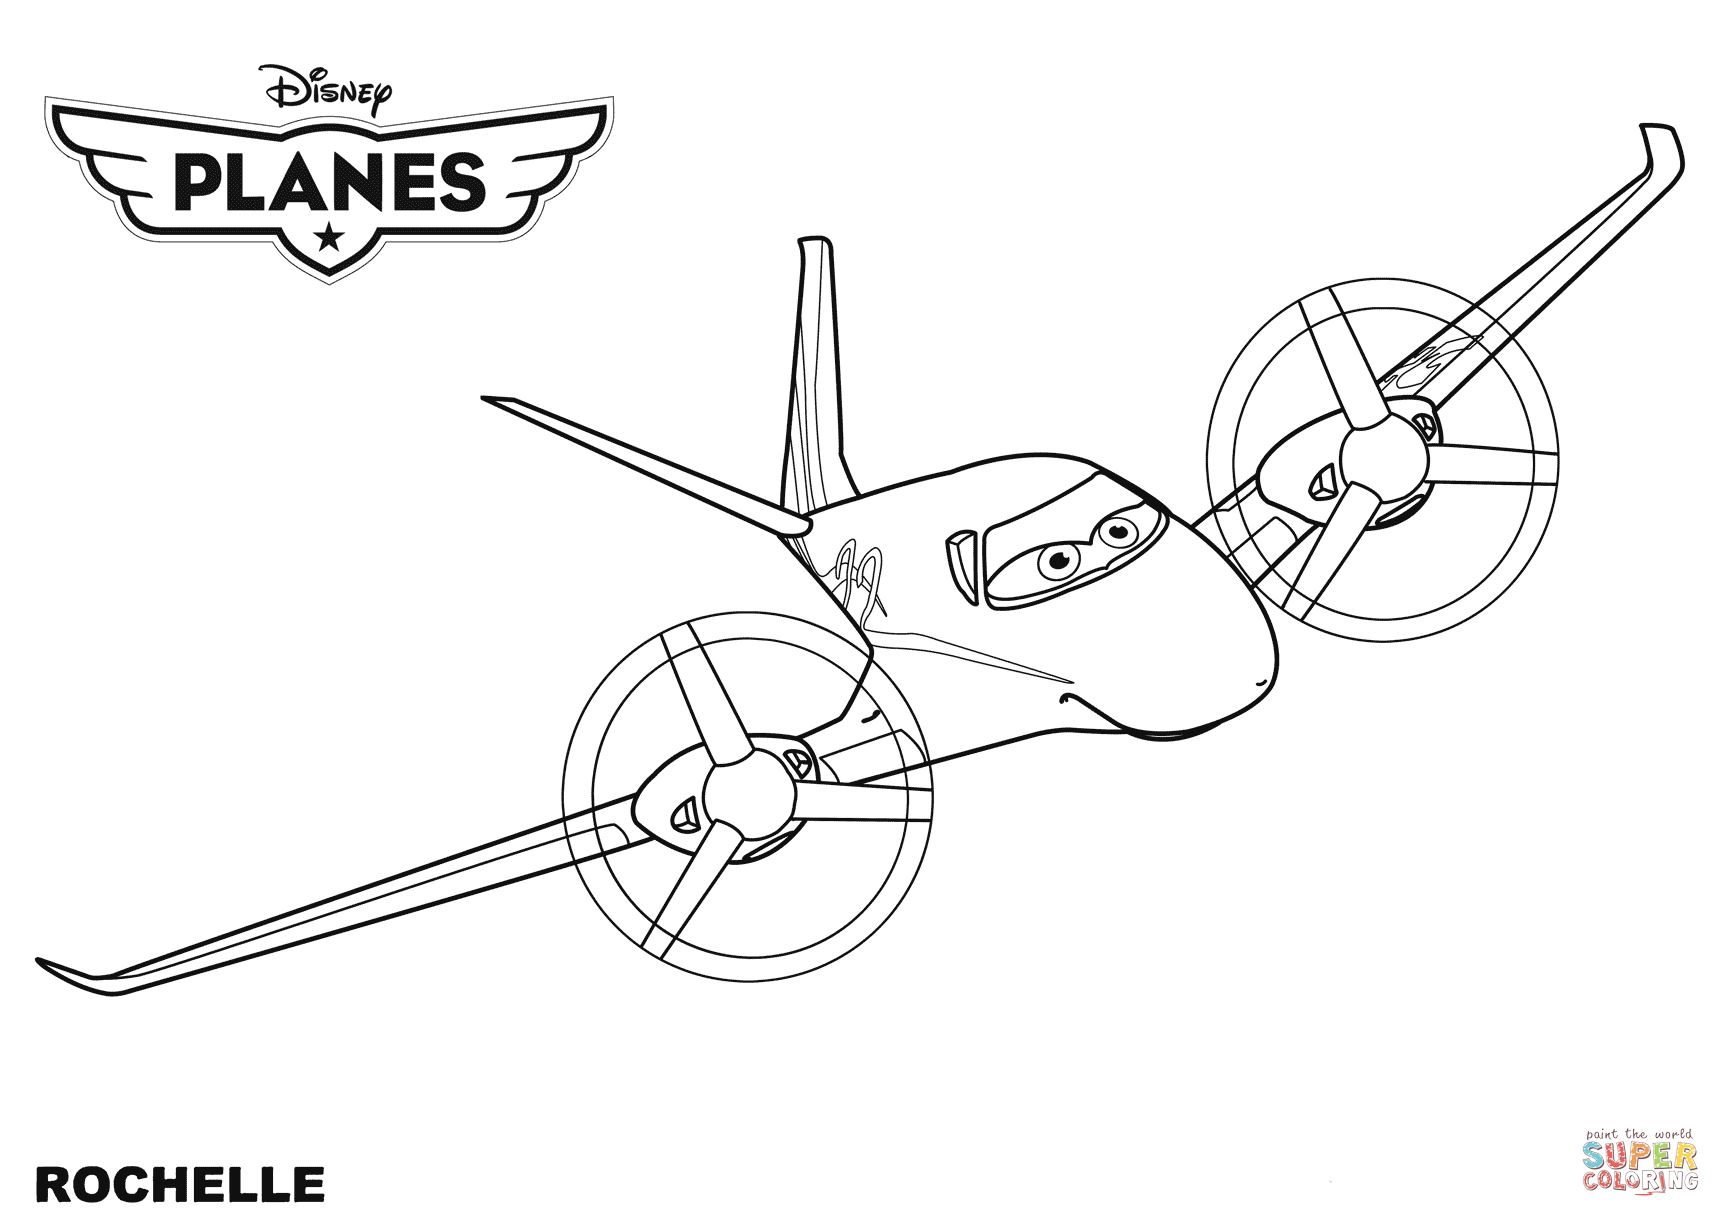 Disney Planes Rochelle Coloring Page